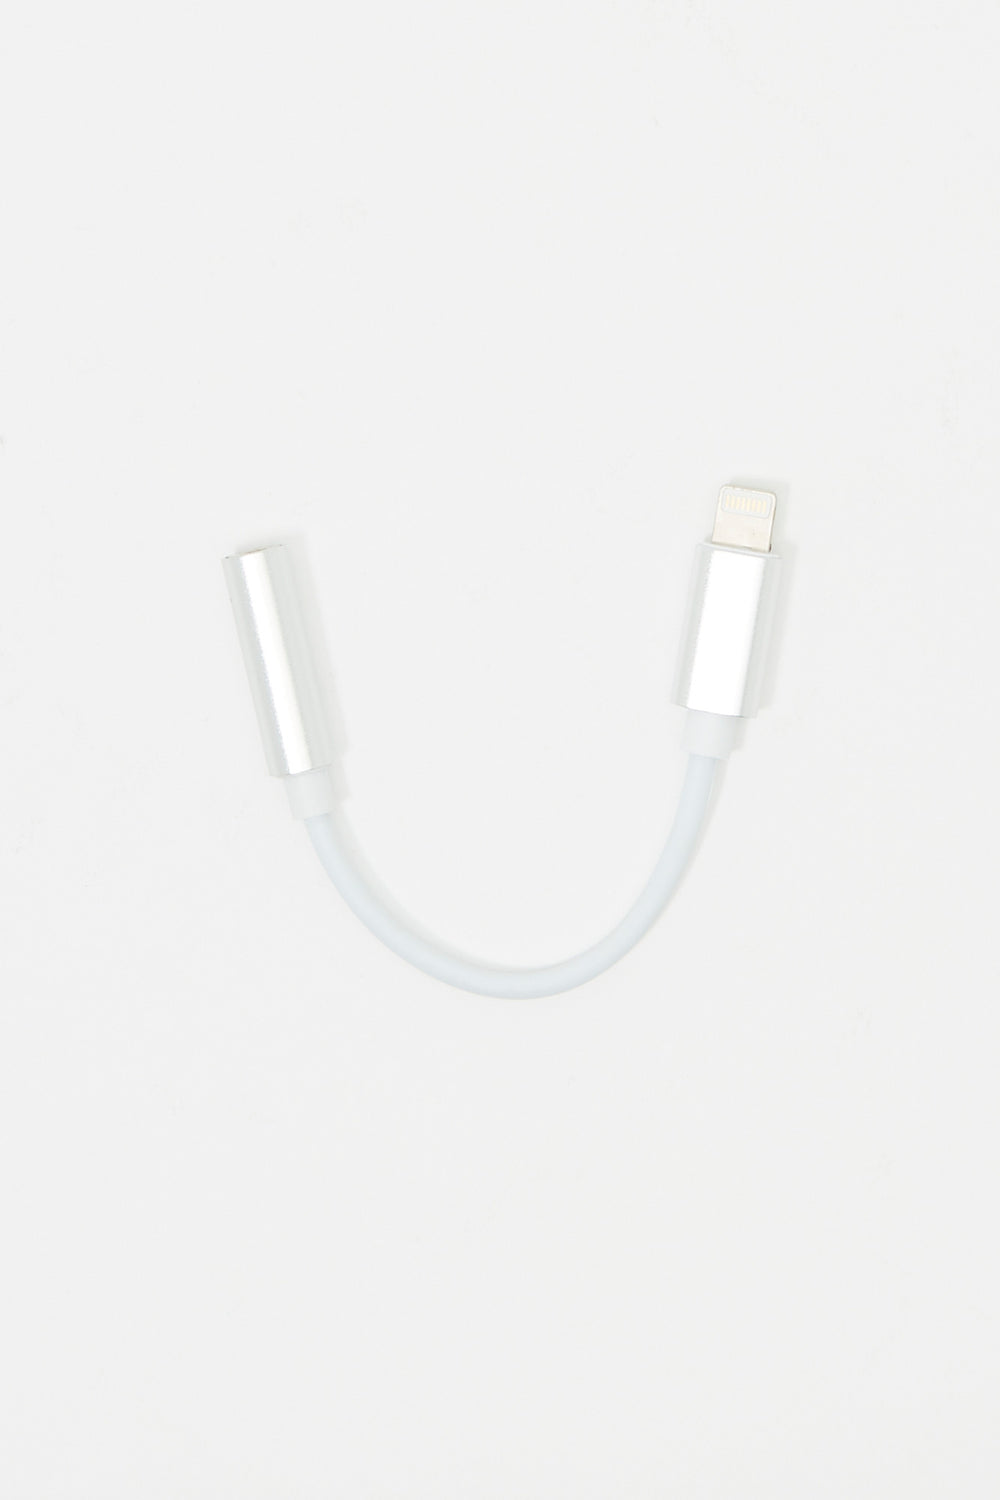 iPhone Earphone Audio Adapter Silver